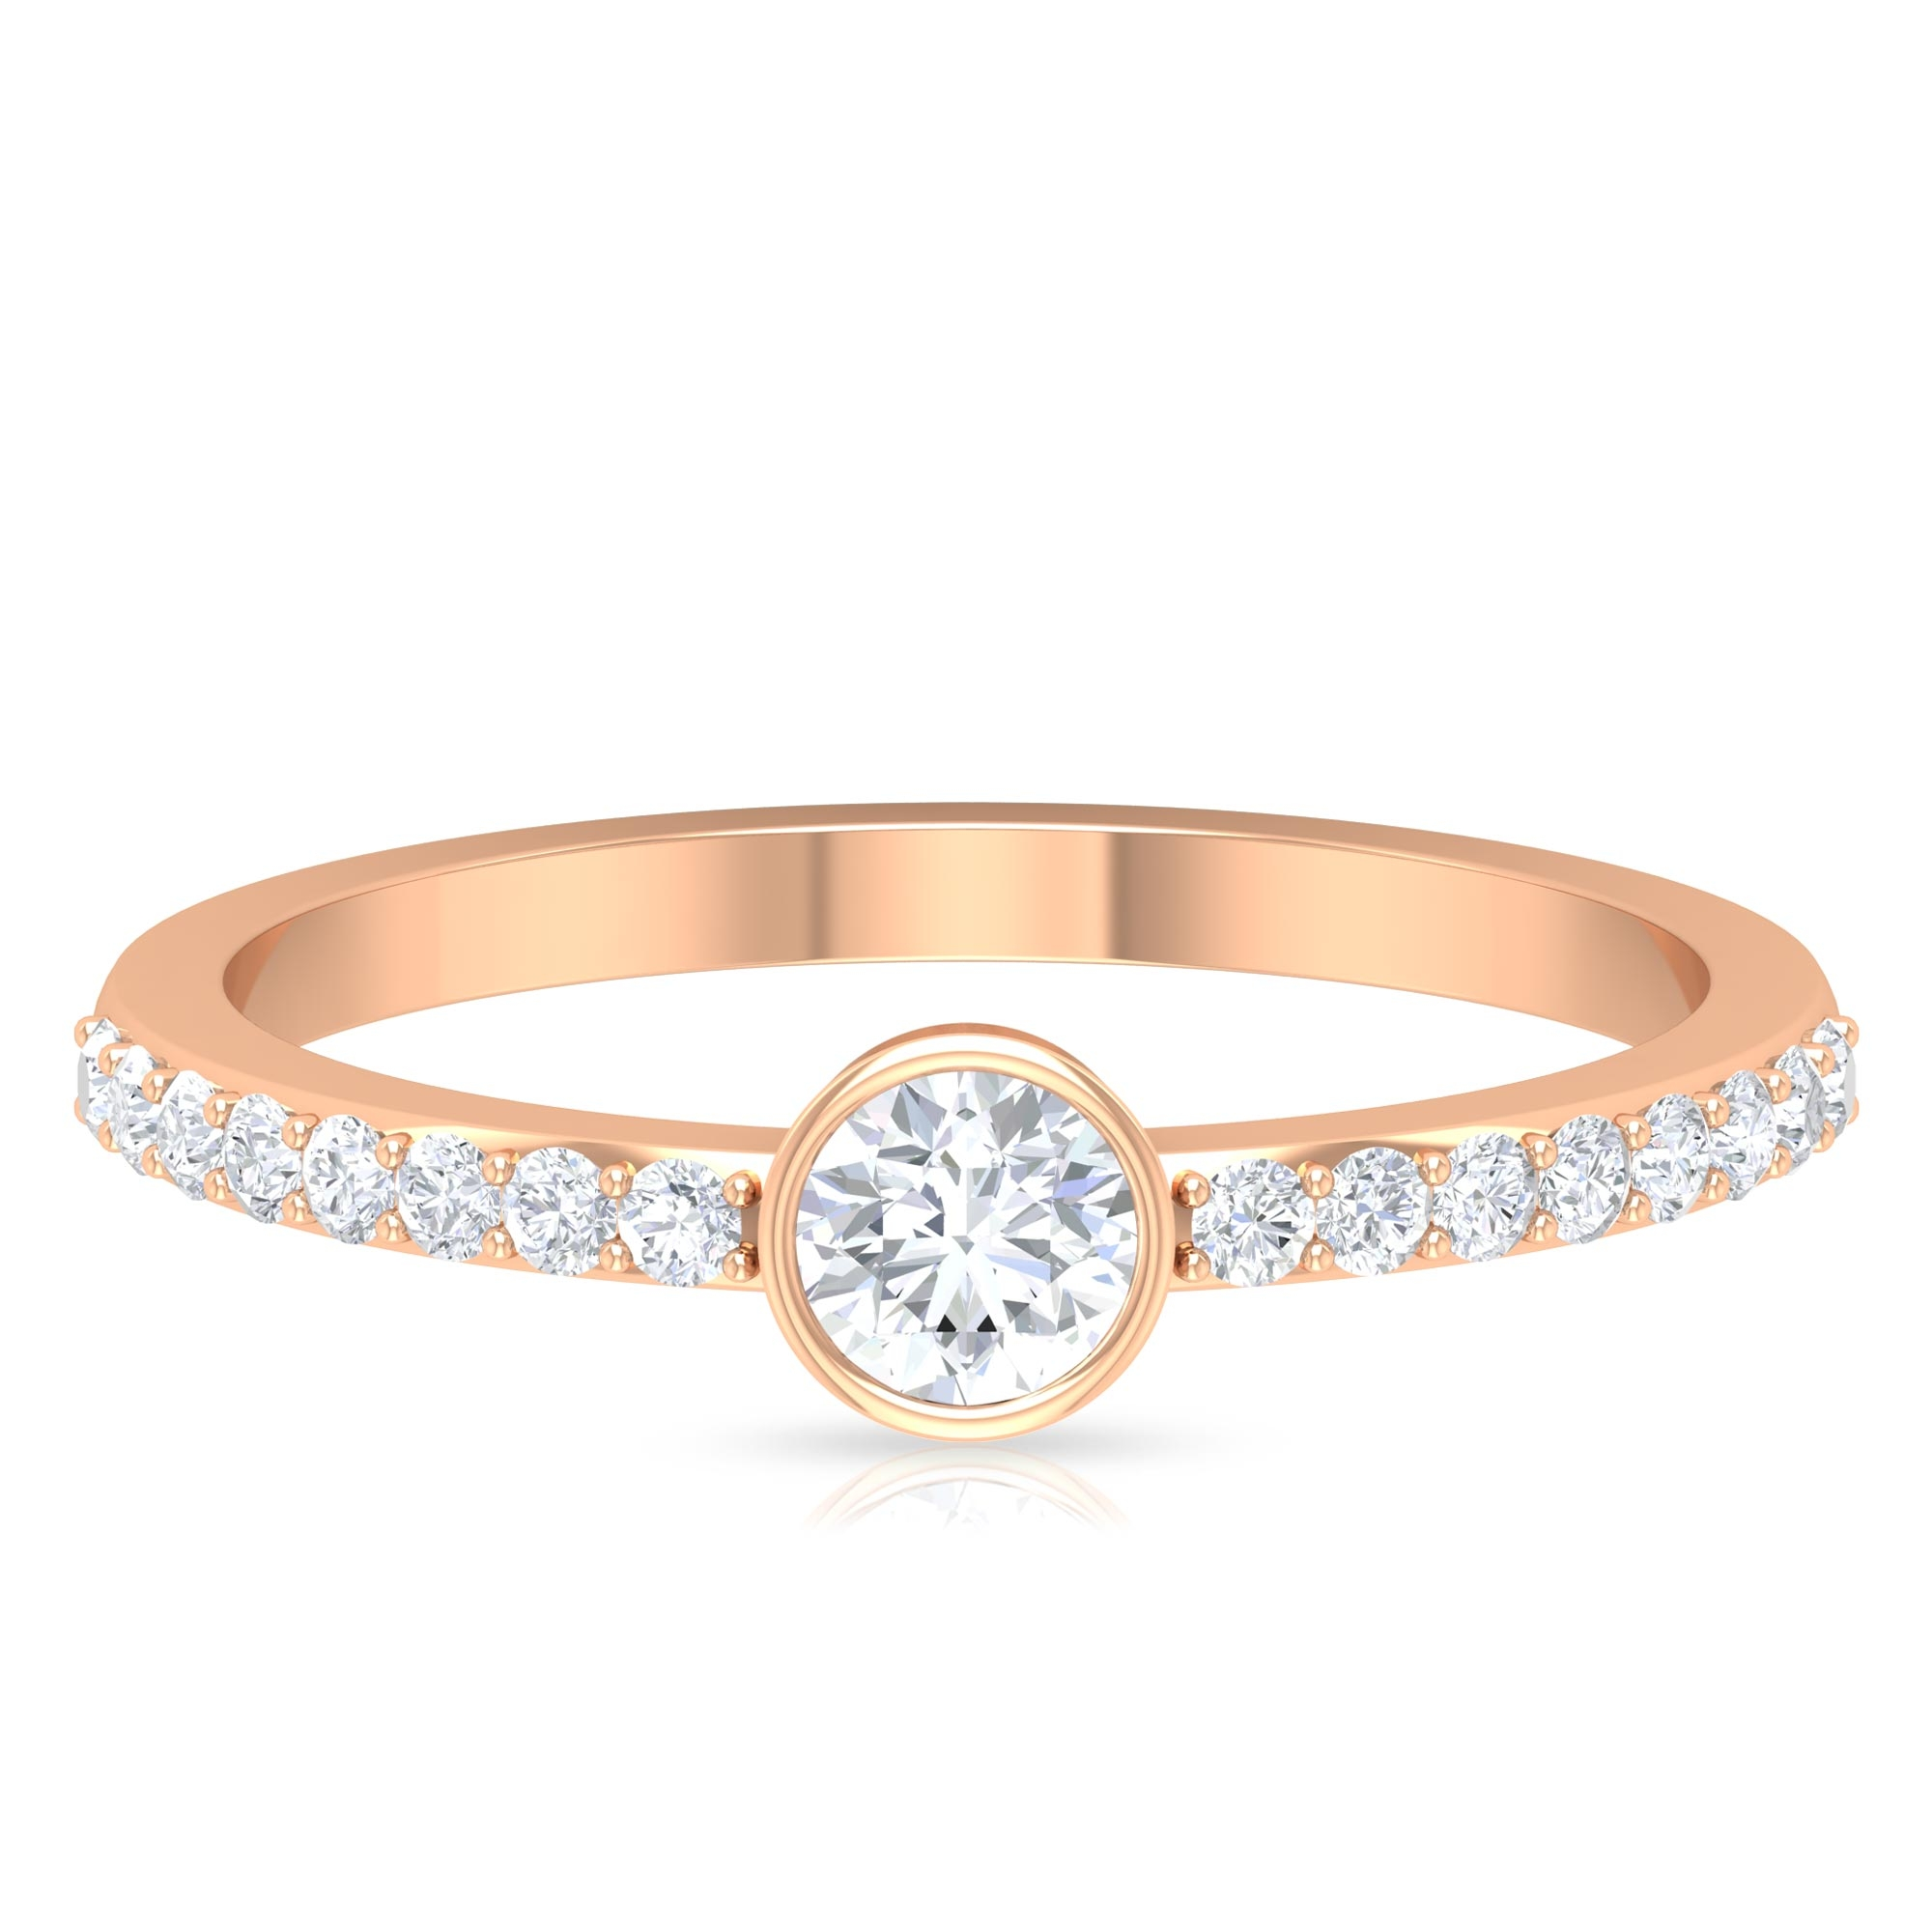 1/2 CT Round Cut Diamond Solitaire Ring in Bezel Setting with Surface Side Stones